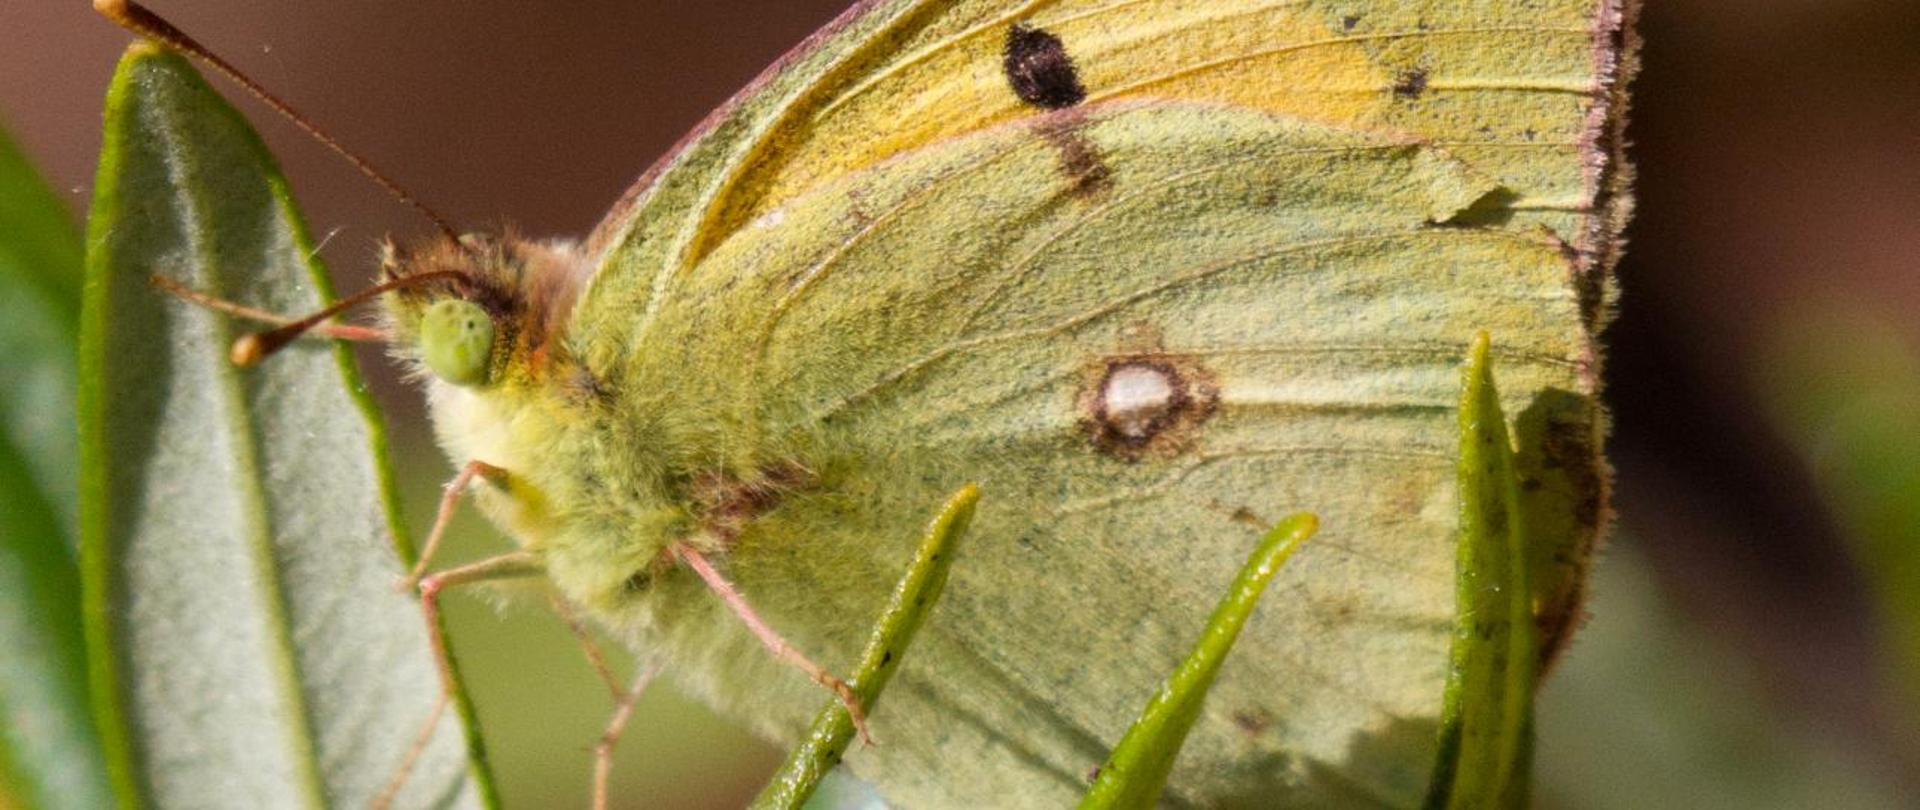 clouded yellow portugal may 15 1 7d 100 400 lr_.jpg